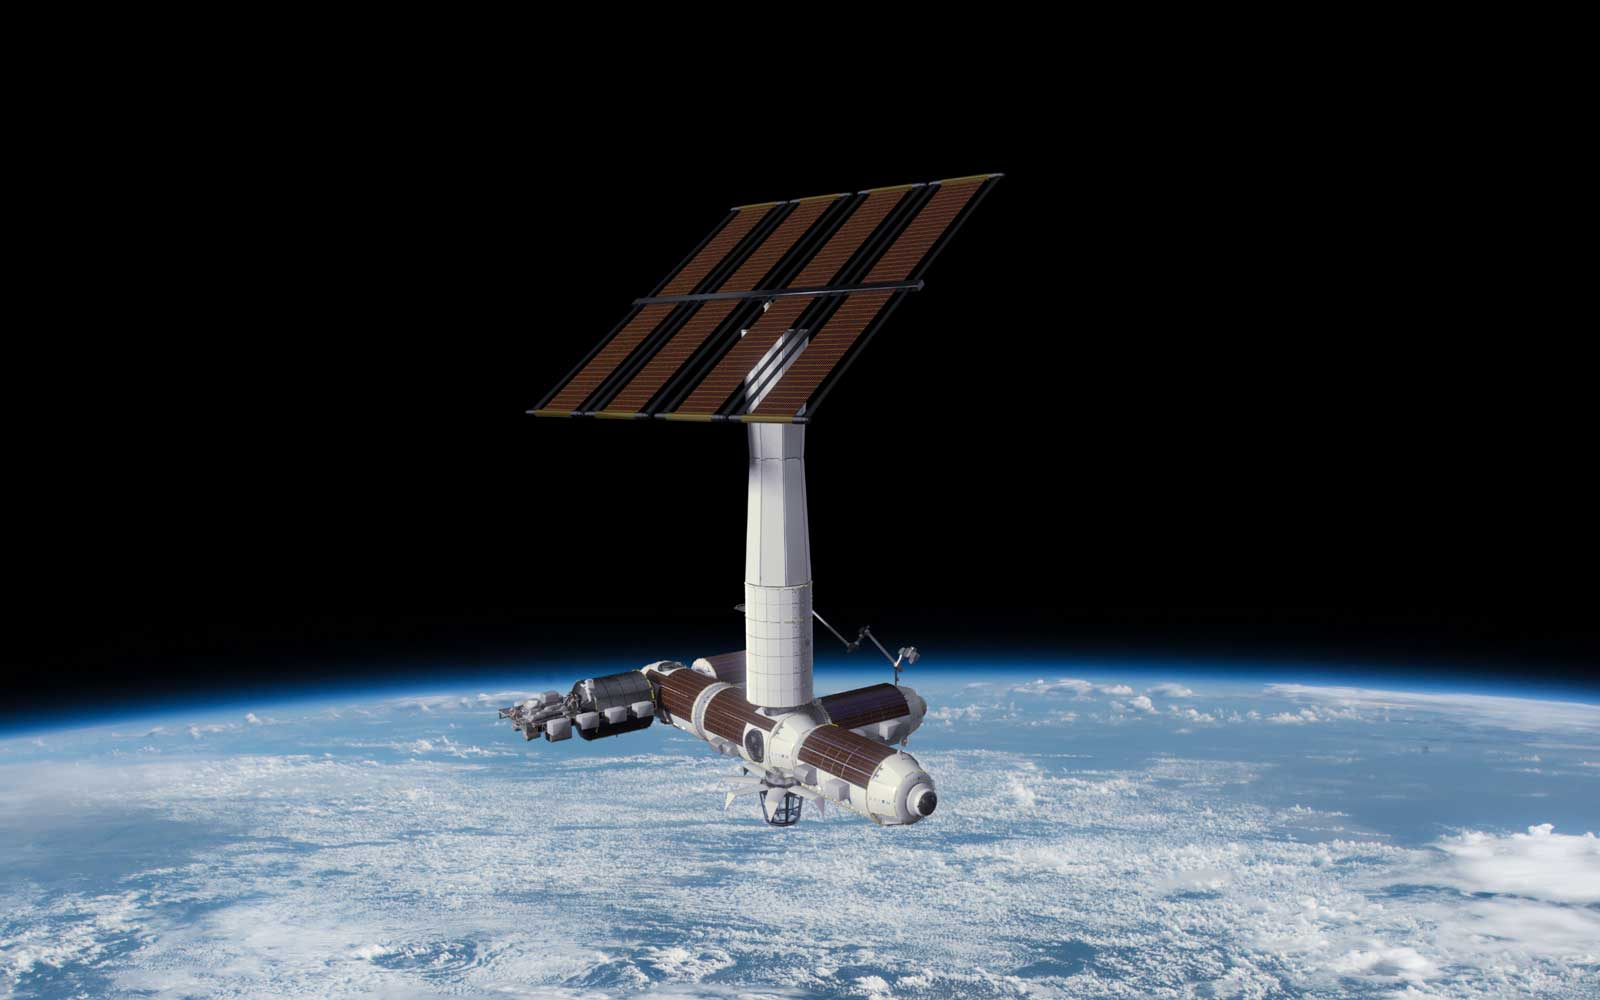 Axiom NASA ISS commercial space